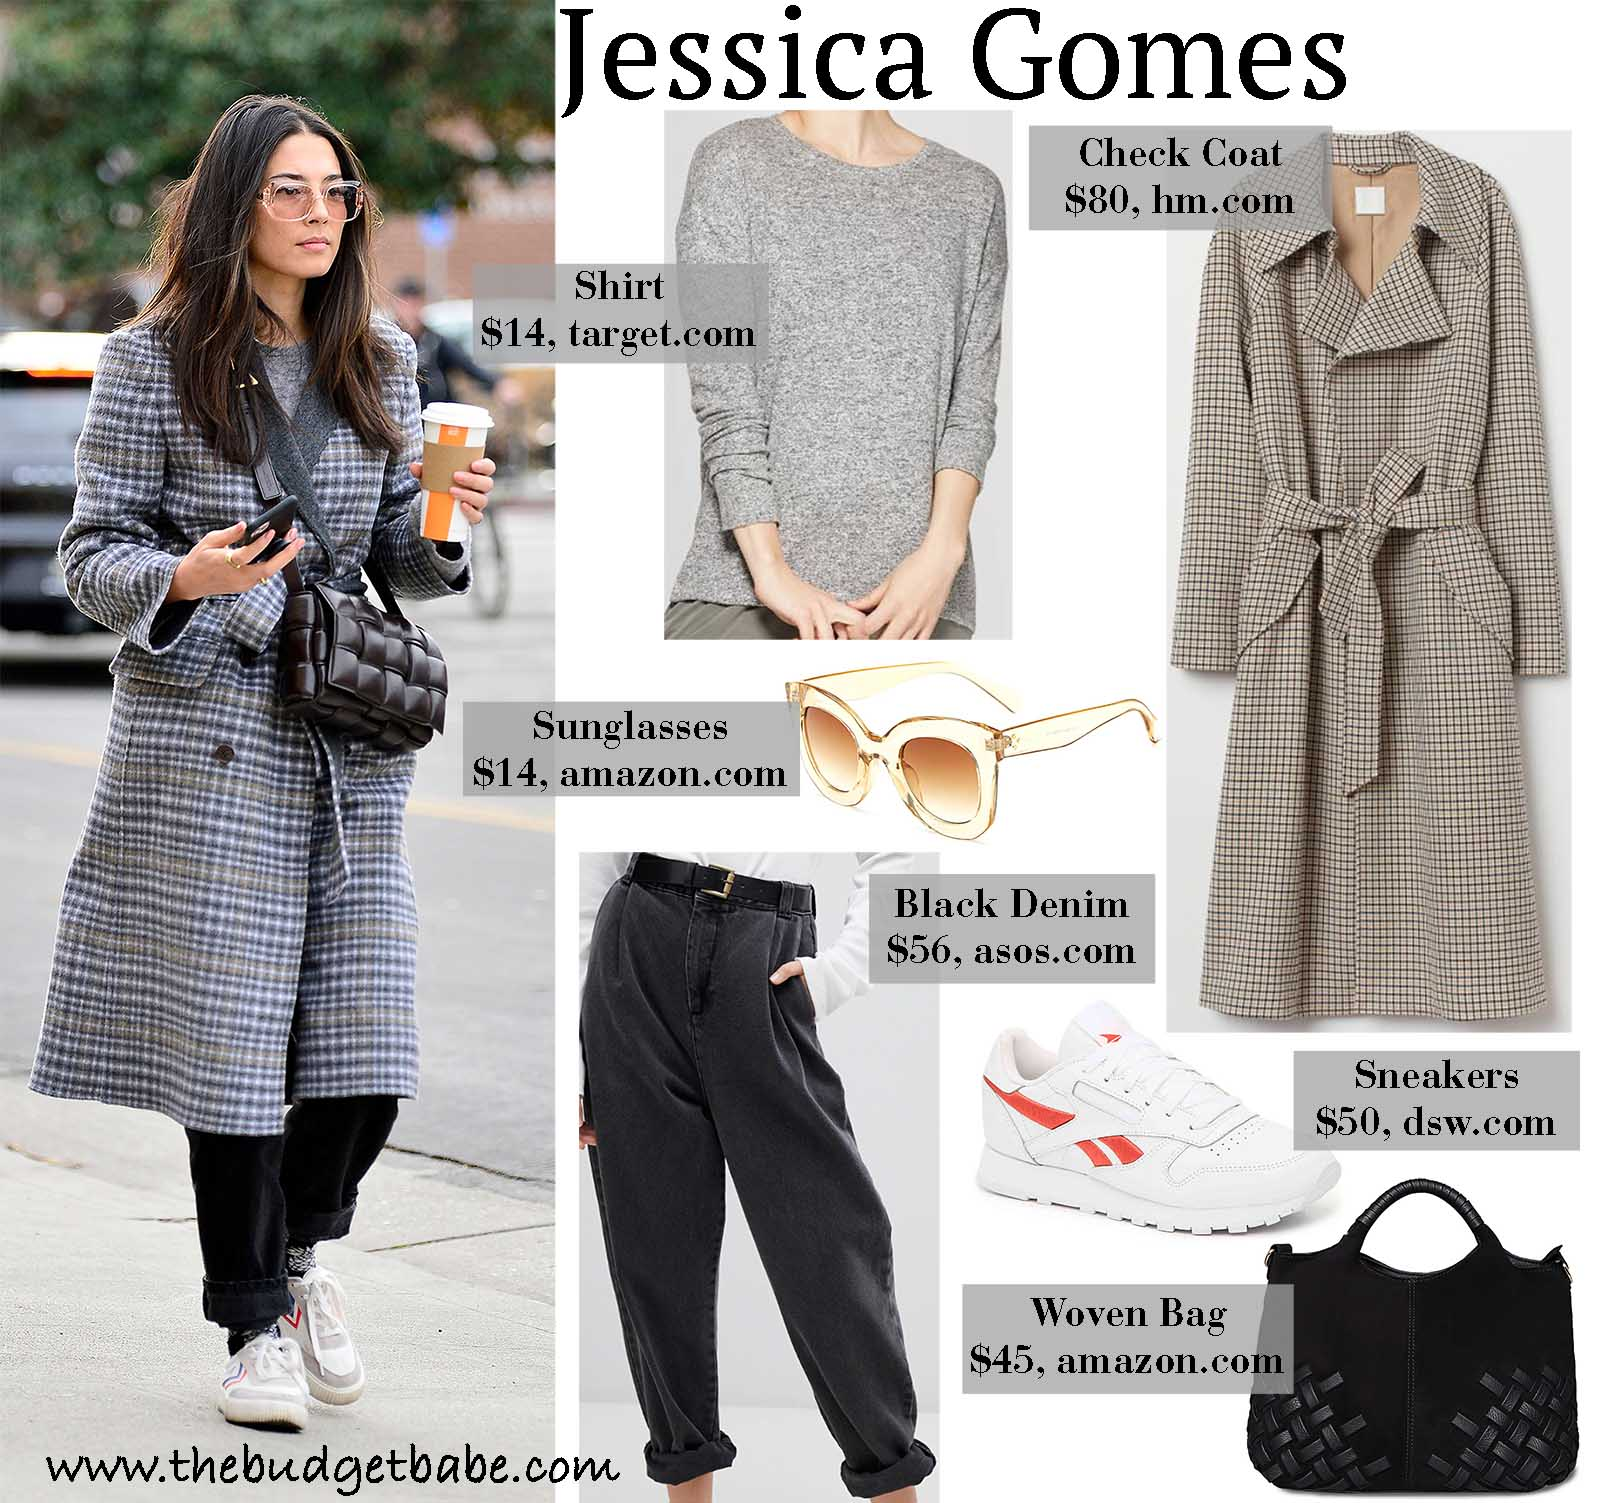 Jessica Gomes keeps warm in a stylish check coat.